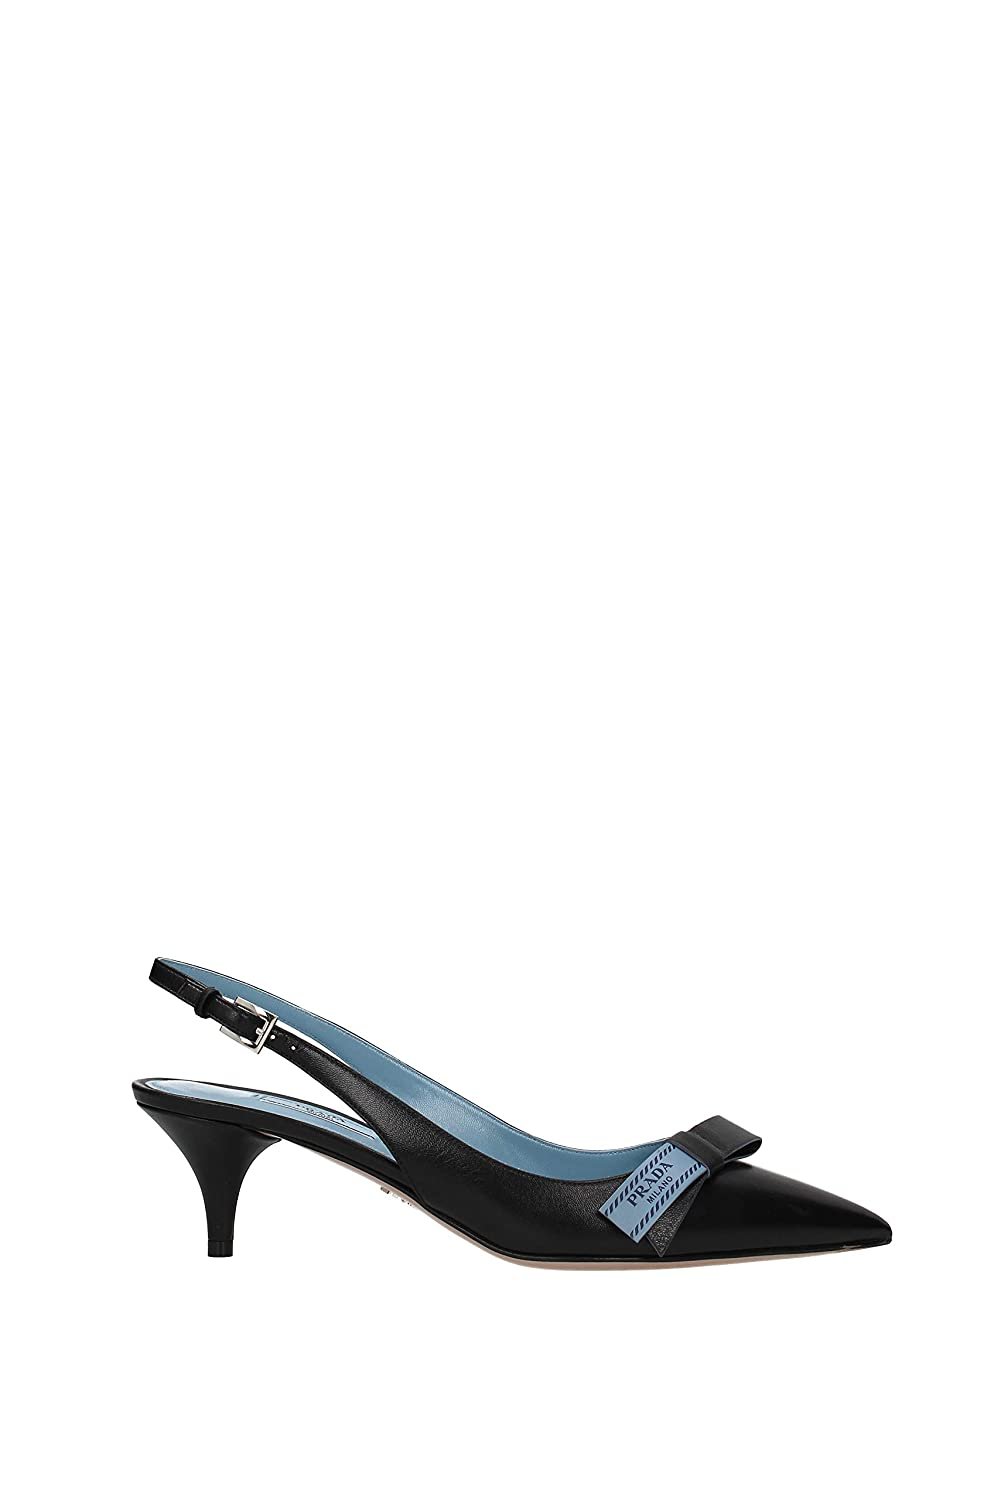 - Prada Women shoes Pumps Heeled Sandals EU 36.5 (US 6.5)   EU 38 (US 8)   EU 38.5 (US 8.5)   EU 40 (US 10) 100% Authentic bluee